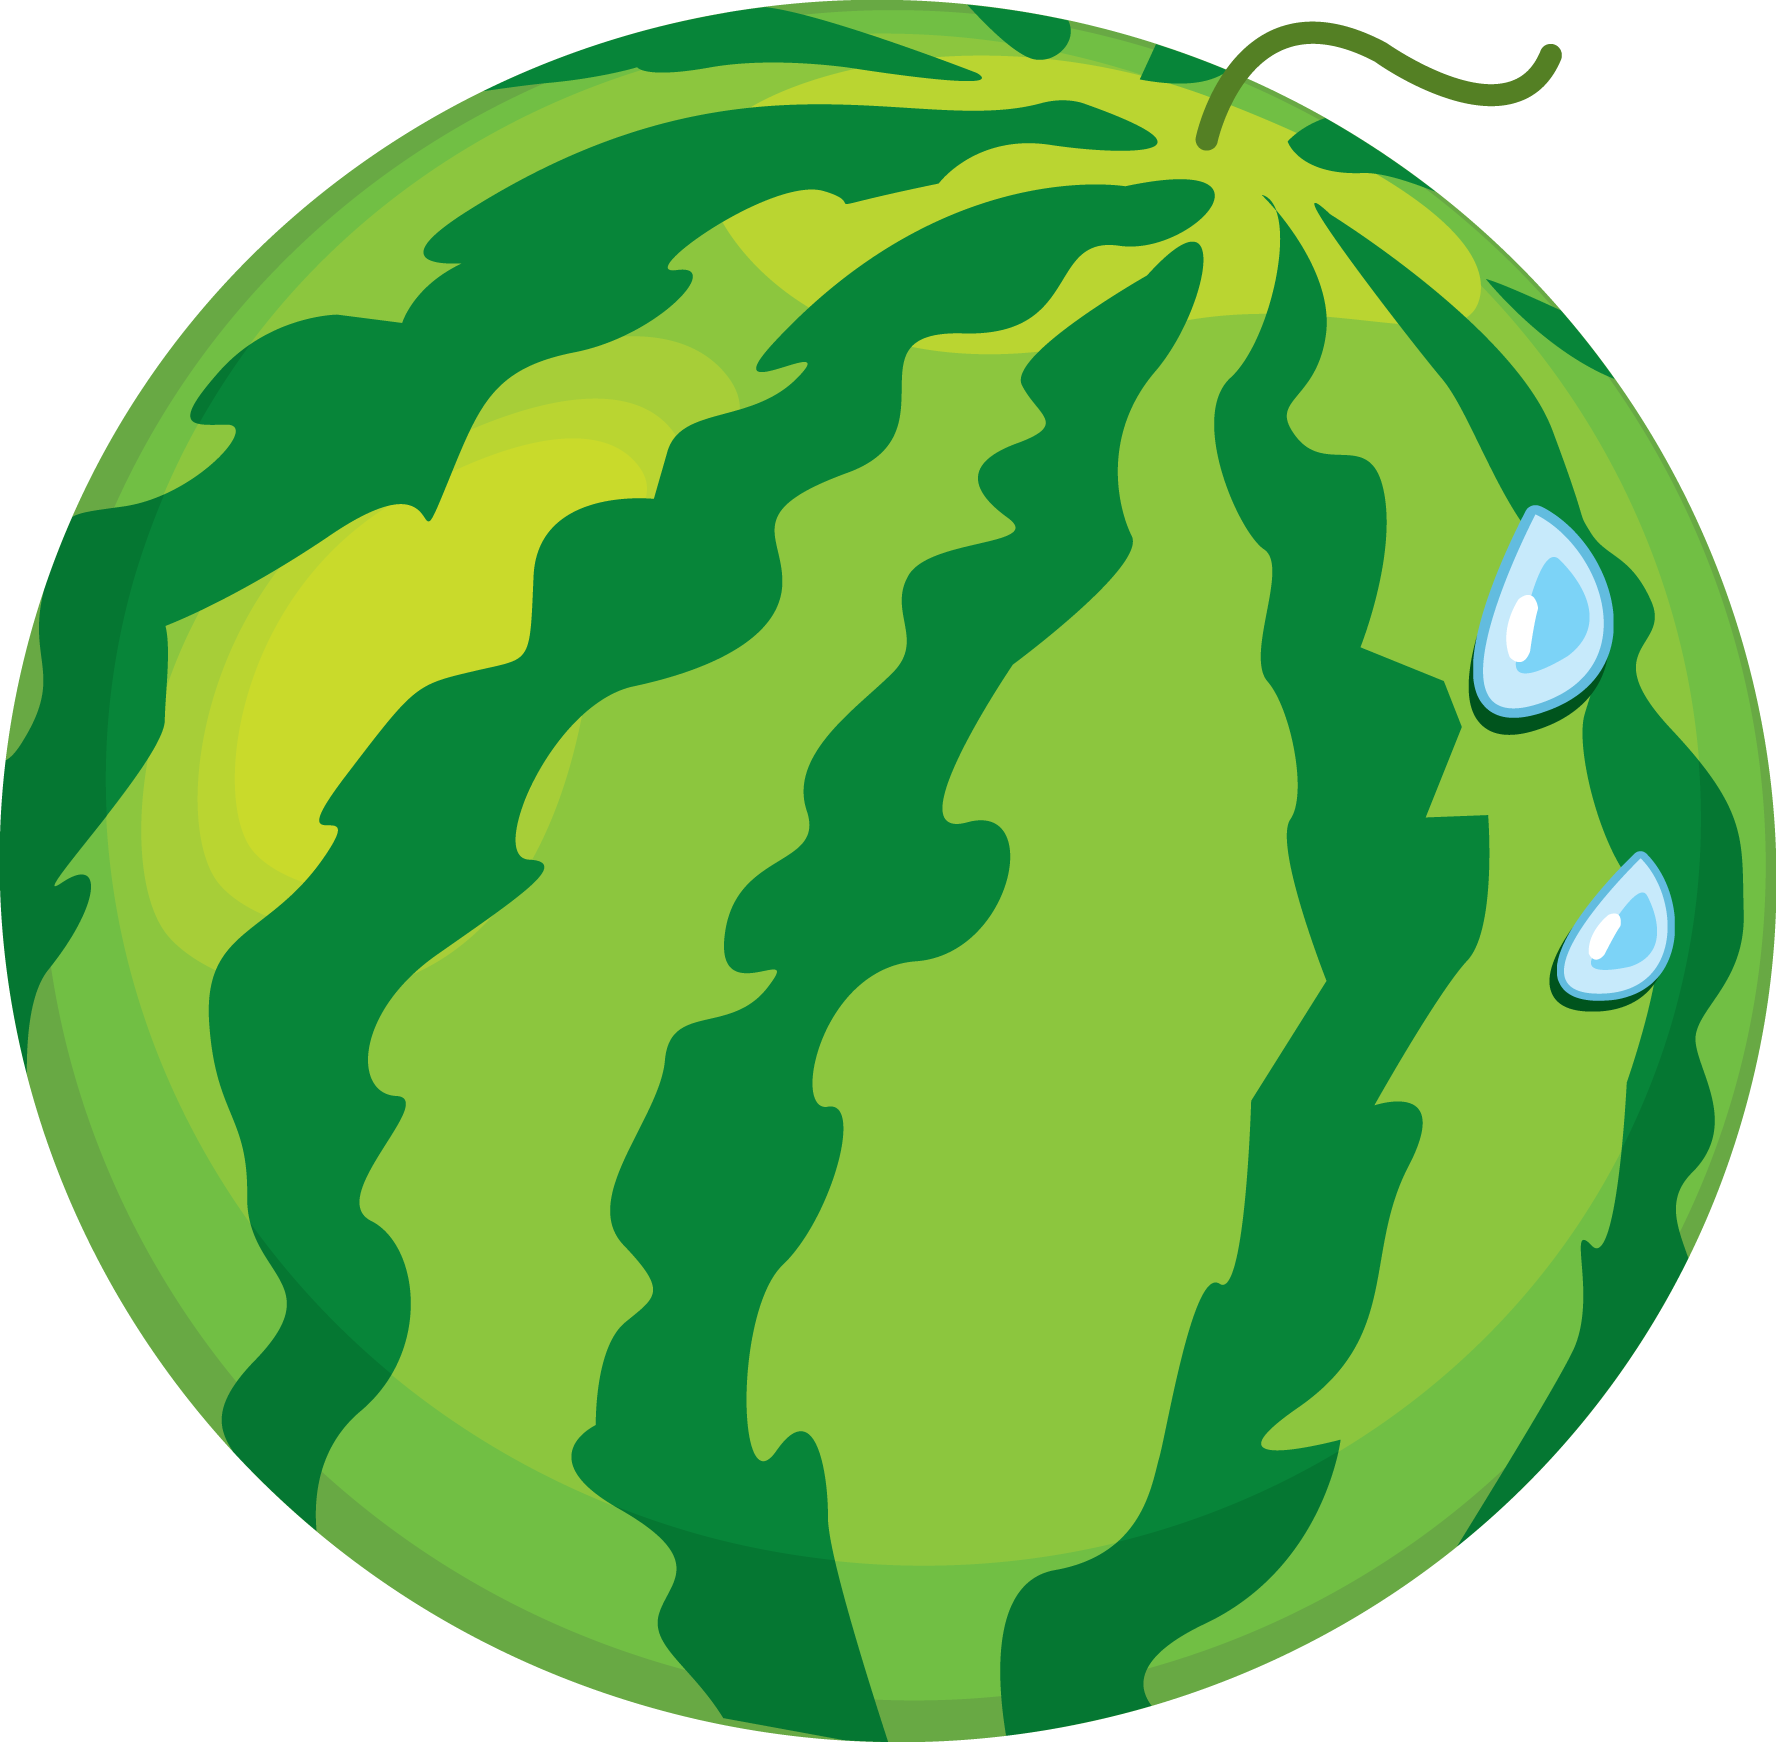 Watermelon clipart fruit clip art 2